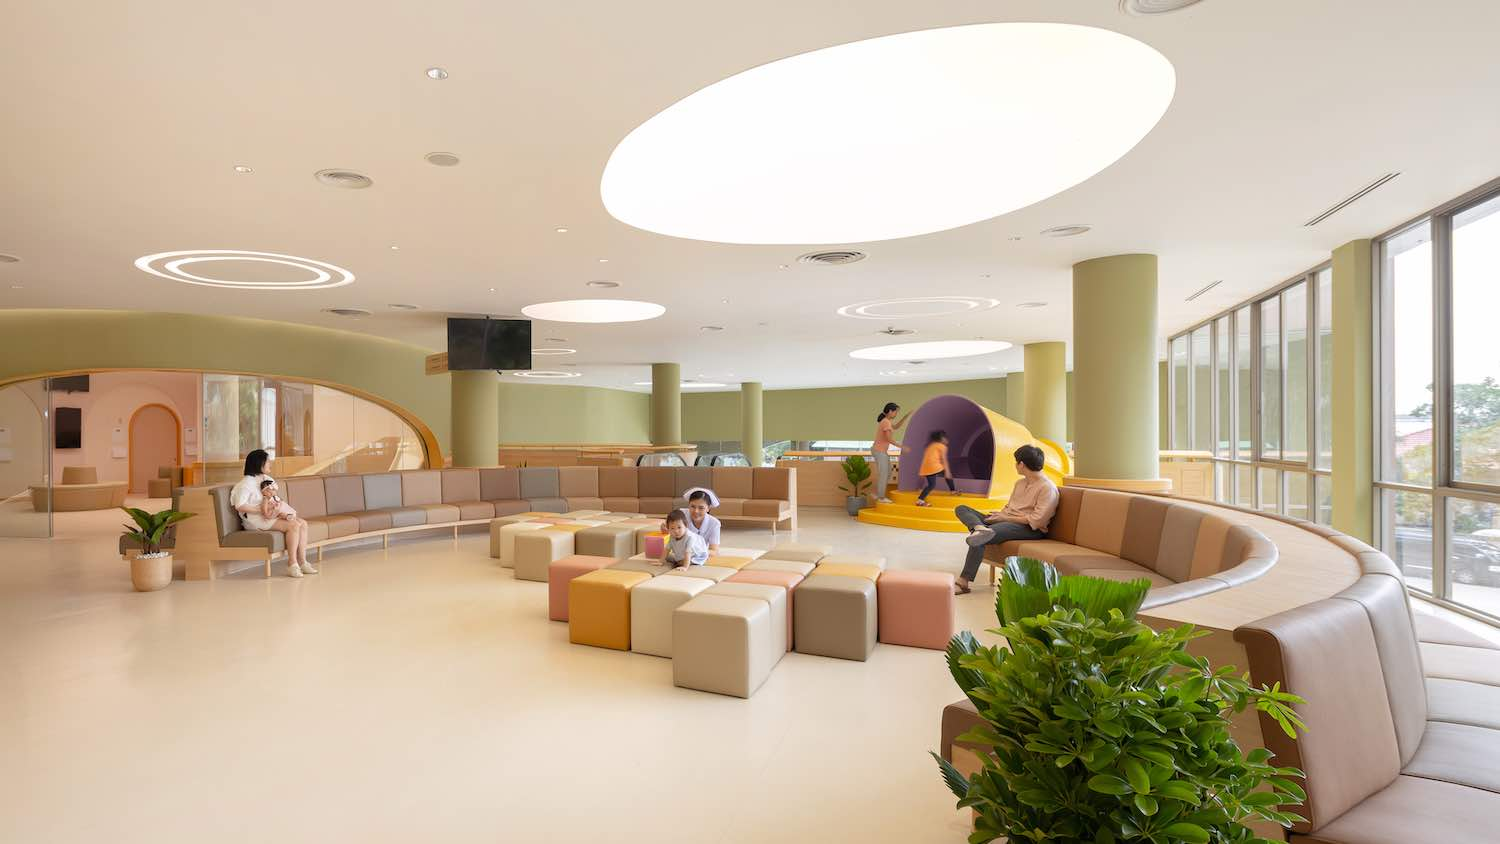 playing area located at the lobby of the hospital